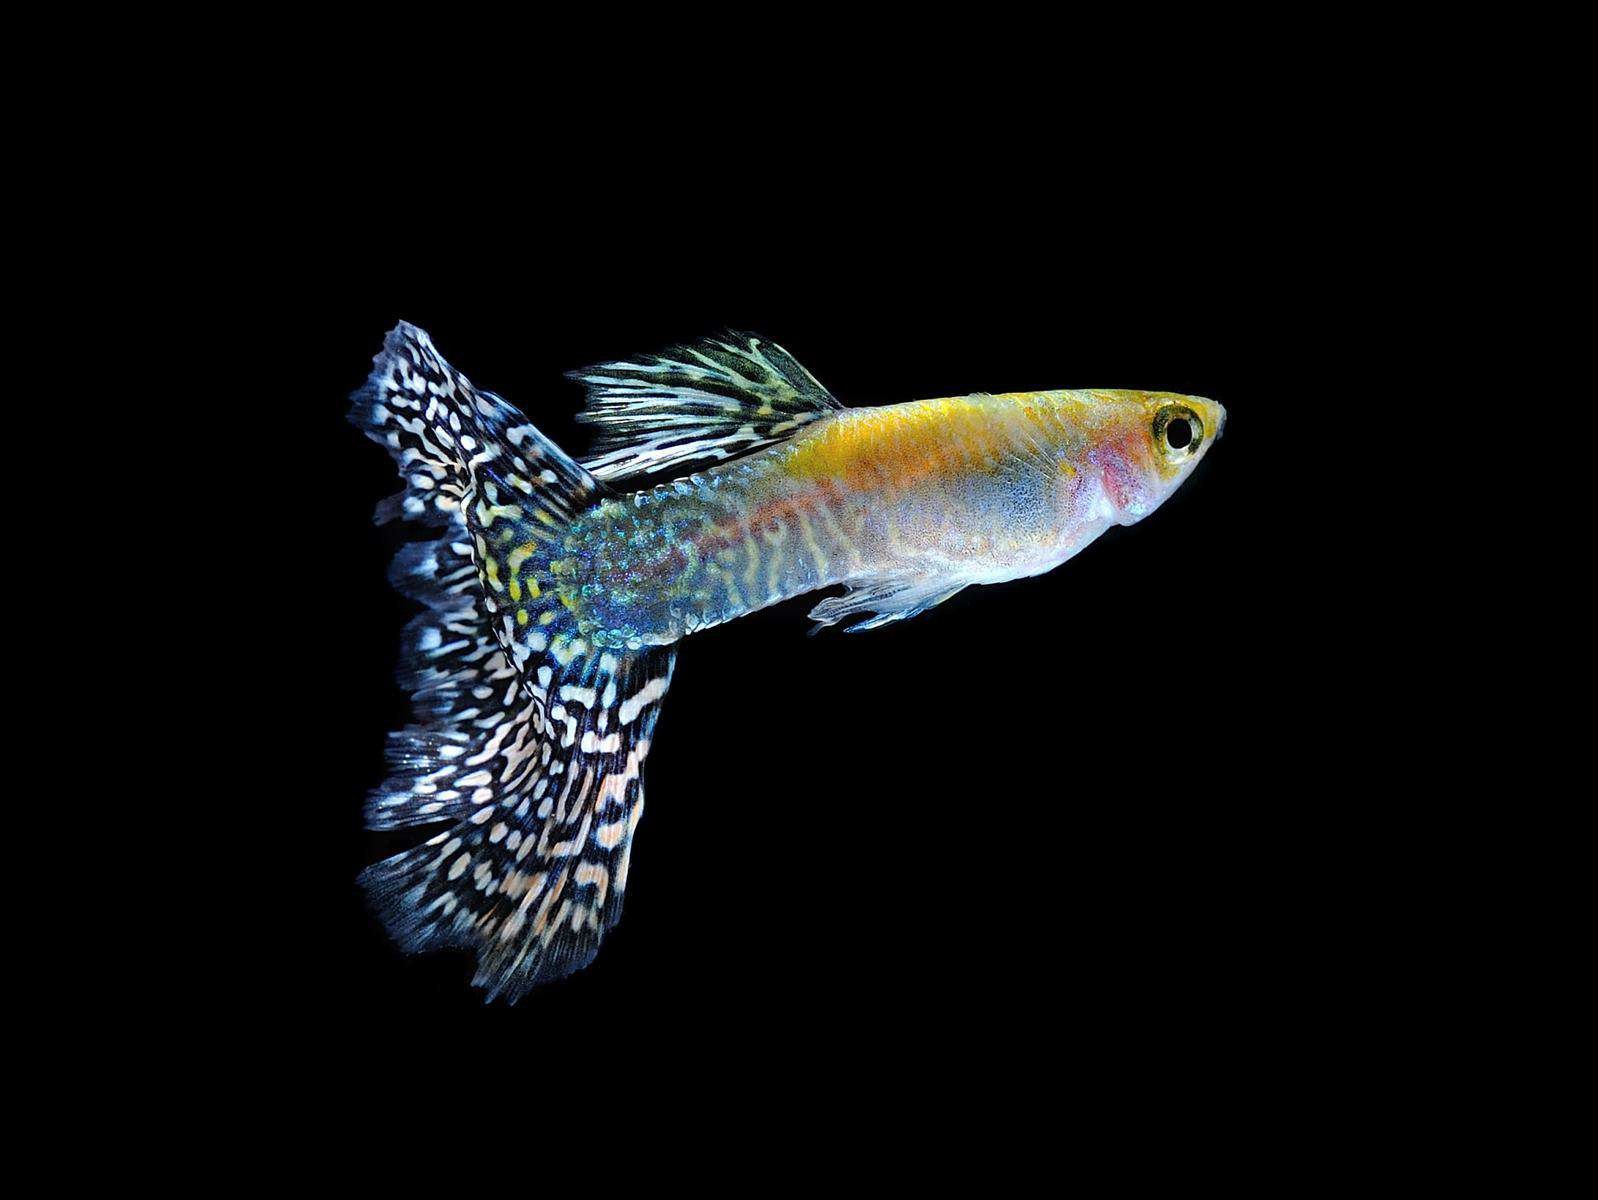 cobra guppy in a black background